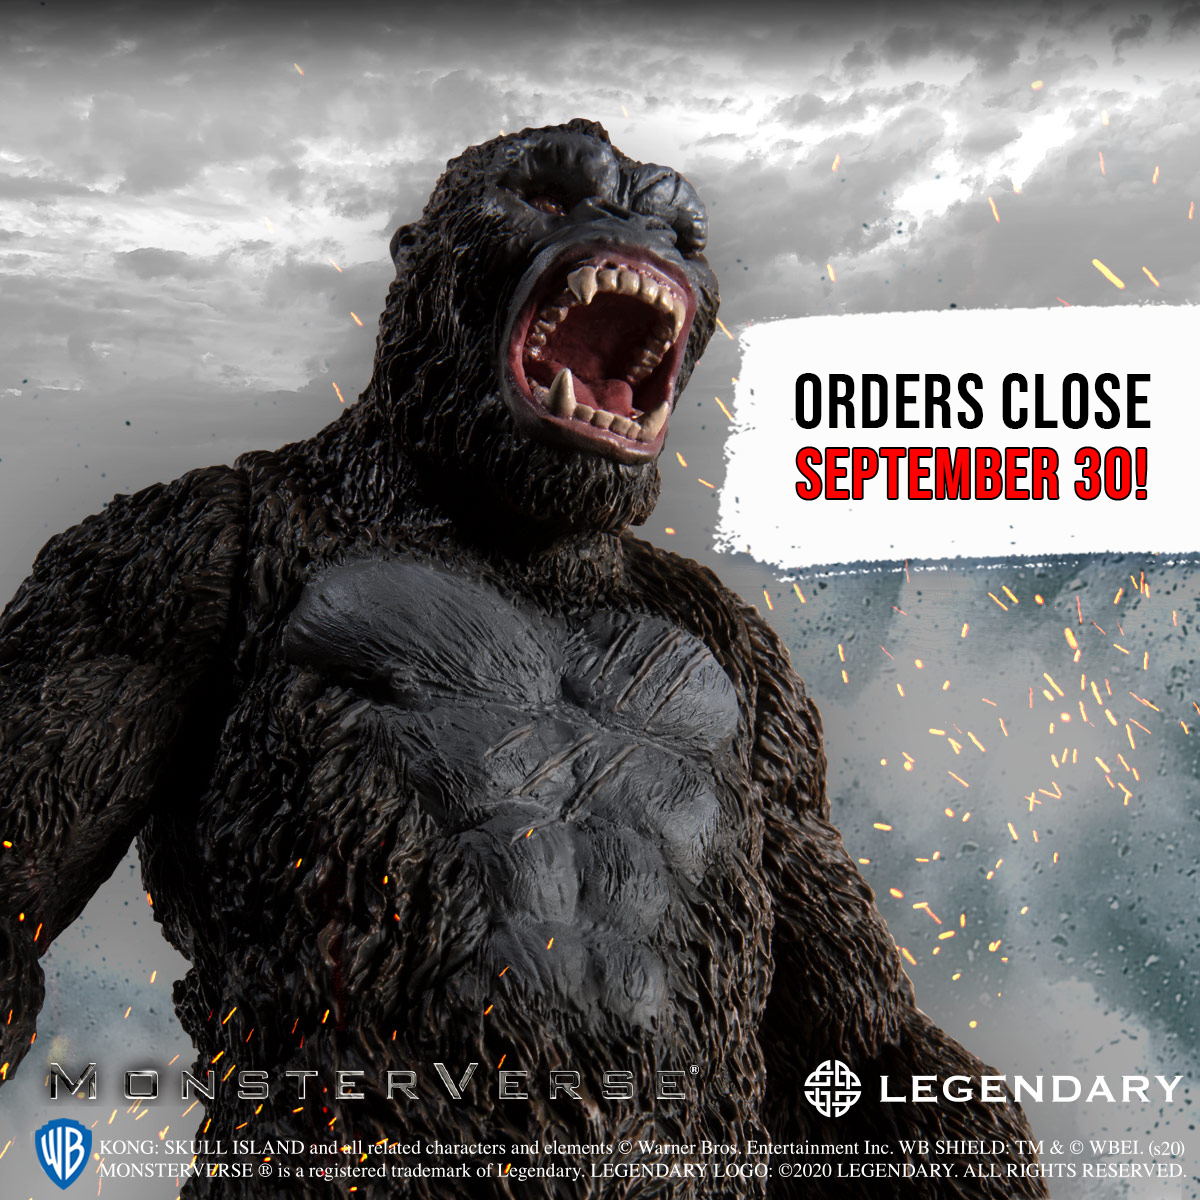 Orders for The legendary Kong: Skull Island figure close on September 30! Get this soft vinyl figure that stands 20cm (about 8 inches) tall!  https://t.co/asKYvroD94   Order yours before it's too late!  #PremiumBandai #KingKong https://t.co/U2fQnZcHA1